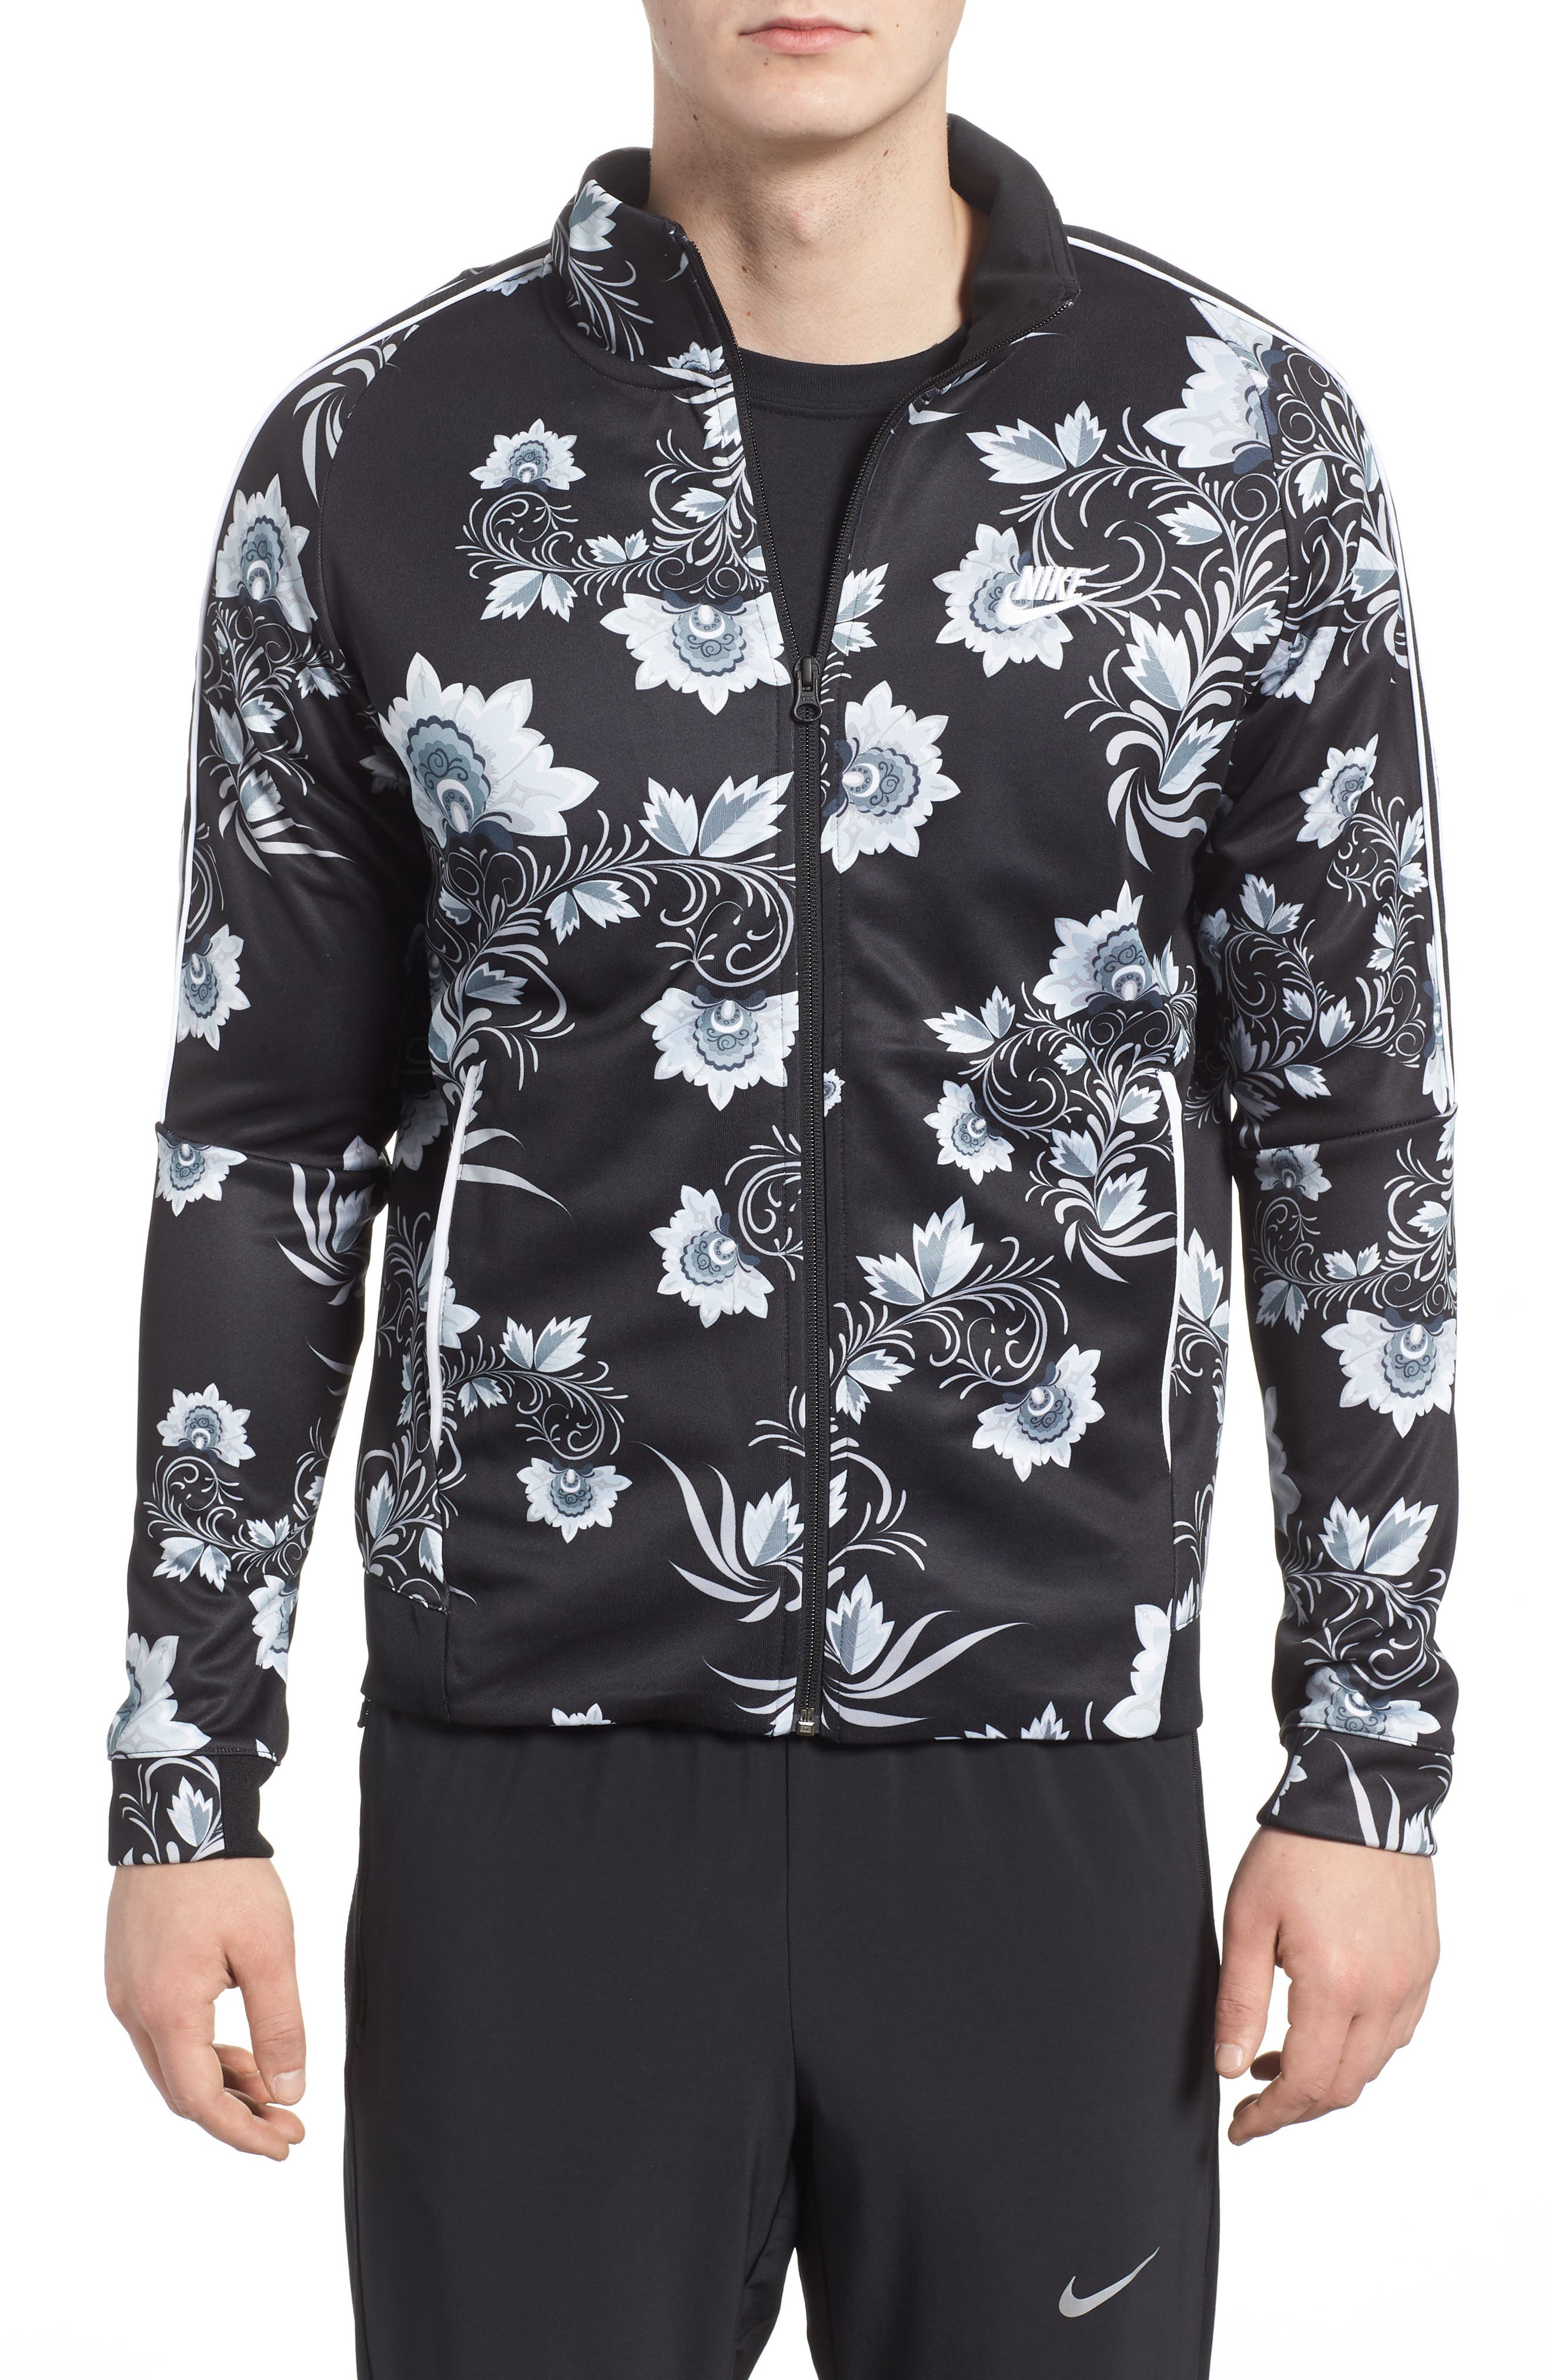 NSW Tribute Jacket,                         Main,                         color, 100